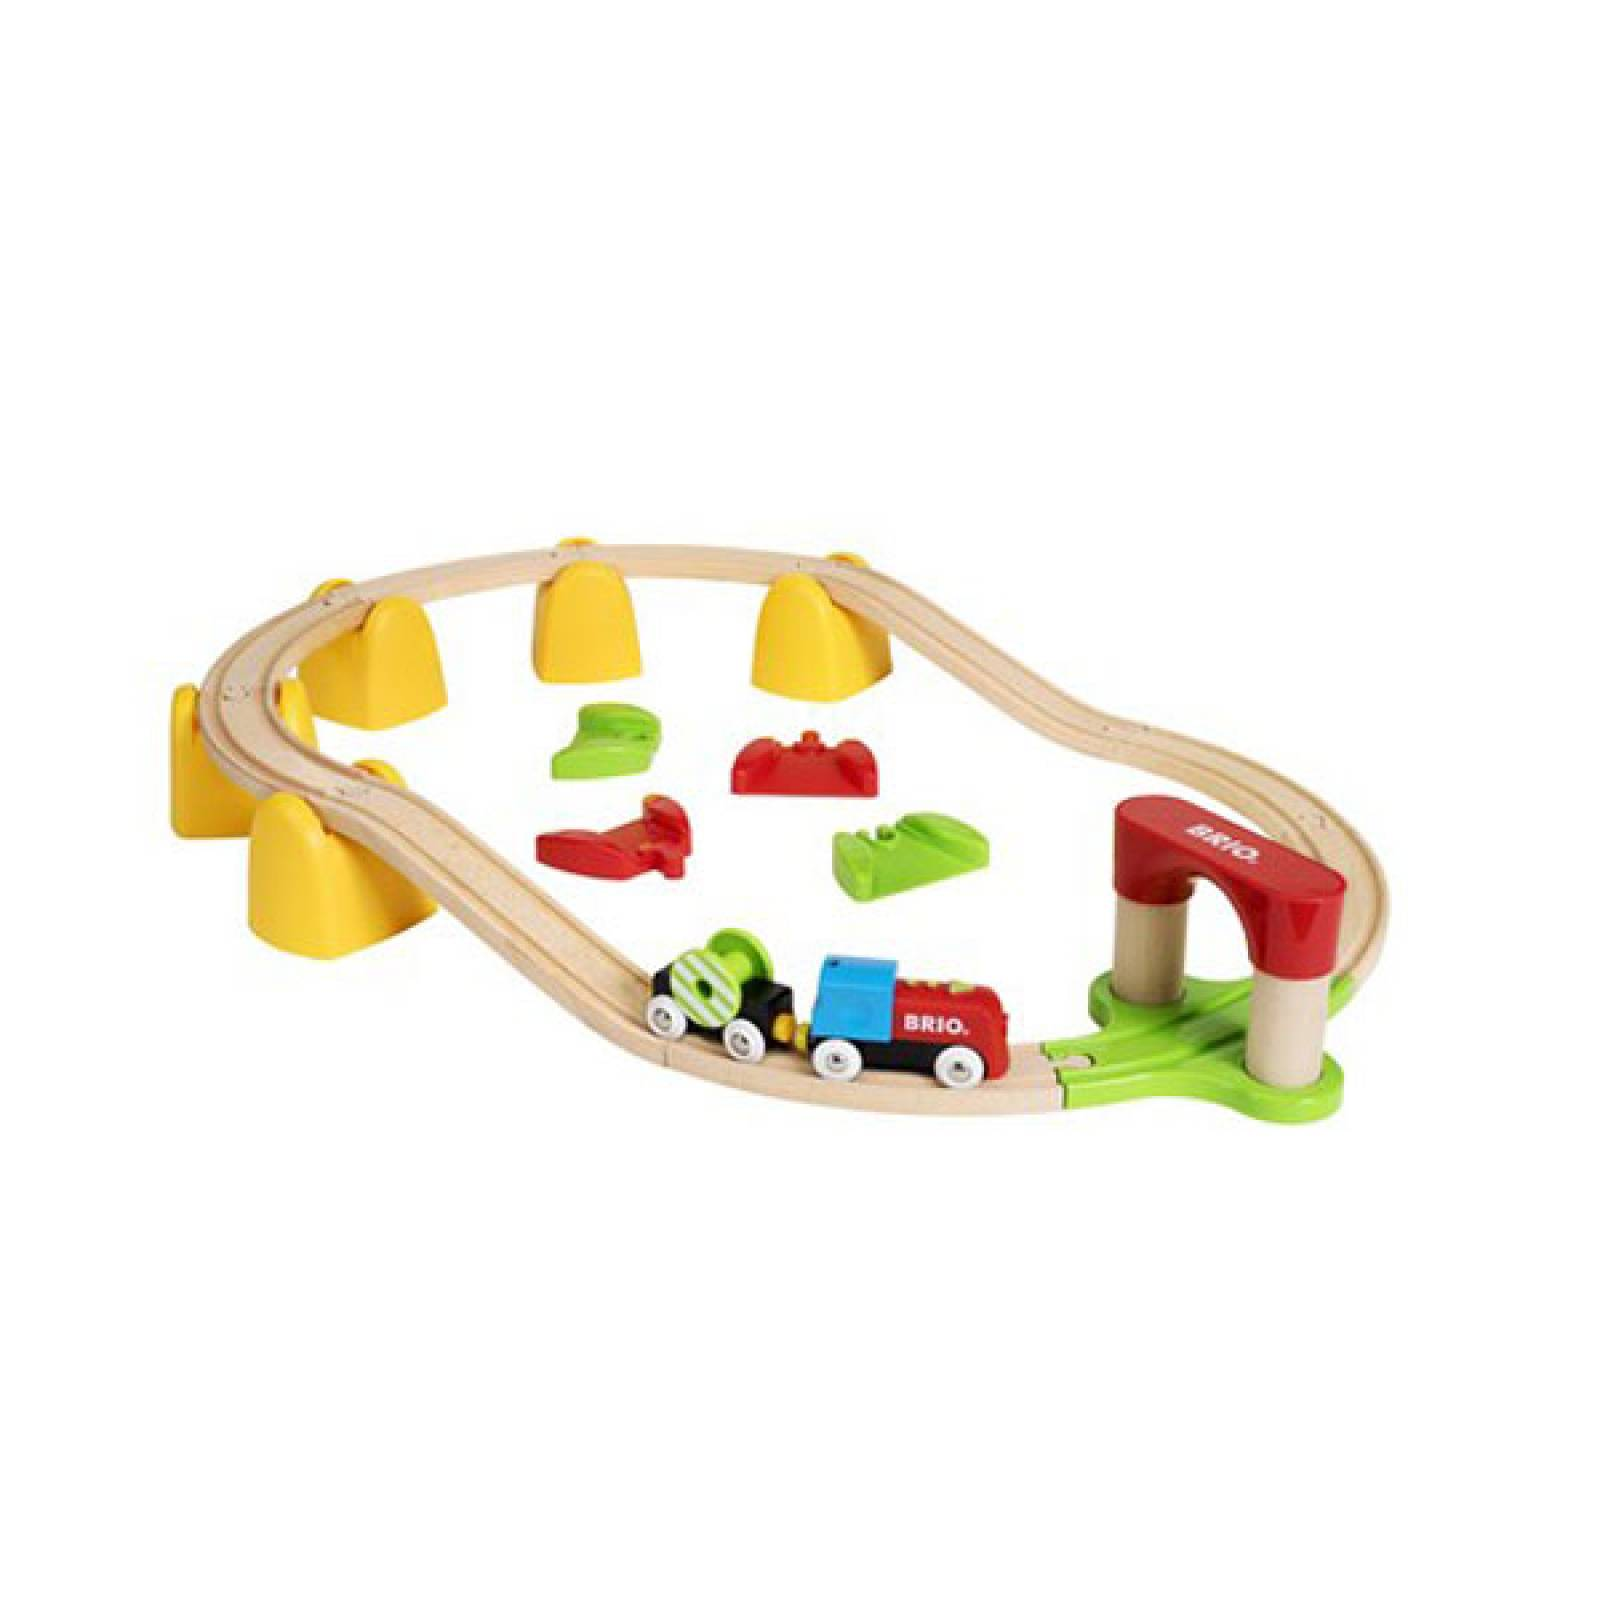 My First Railway Battery Train Set BRIO Wooden Railway Age 1.5+